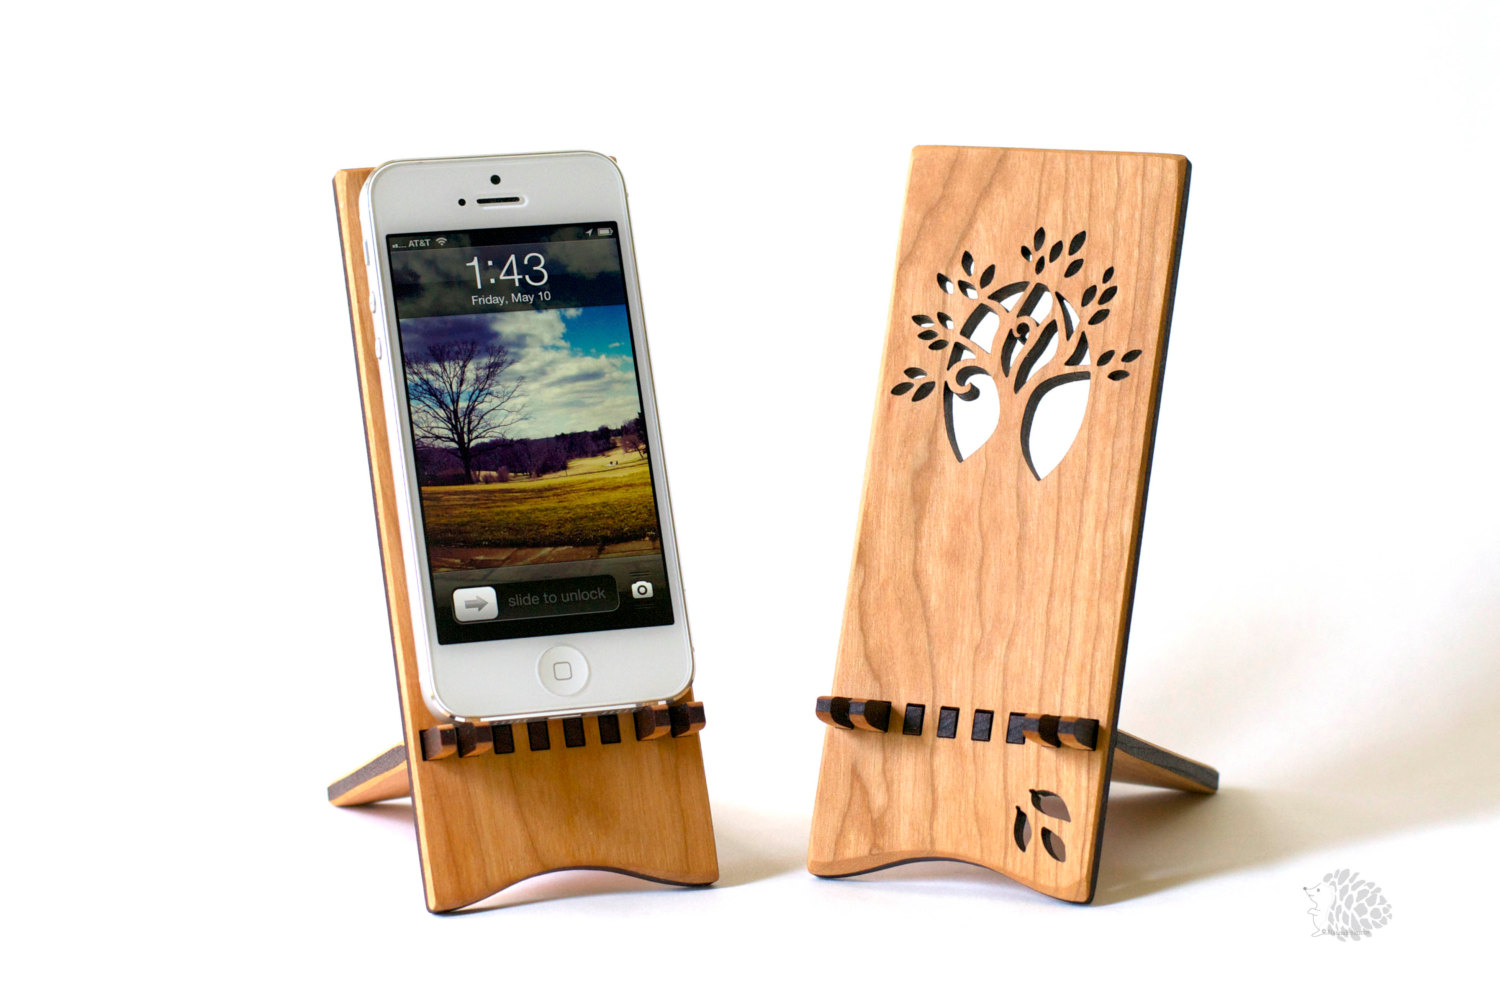 Creative handmade iphone and ipad stands style motivation